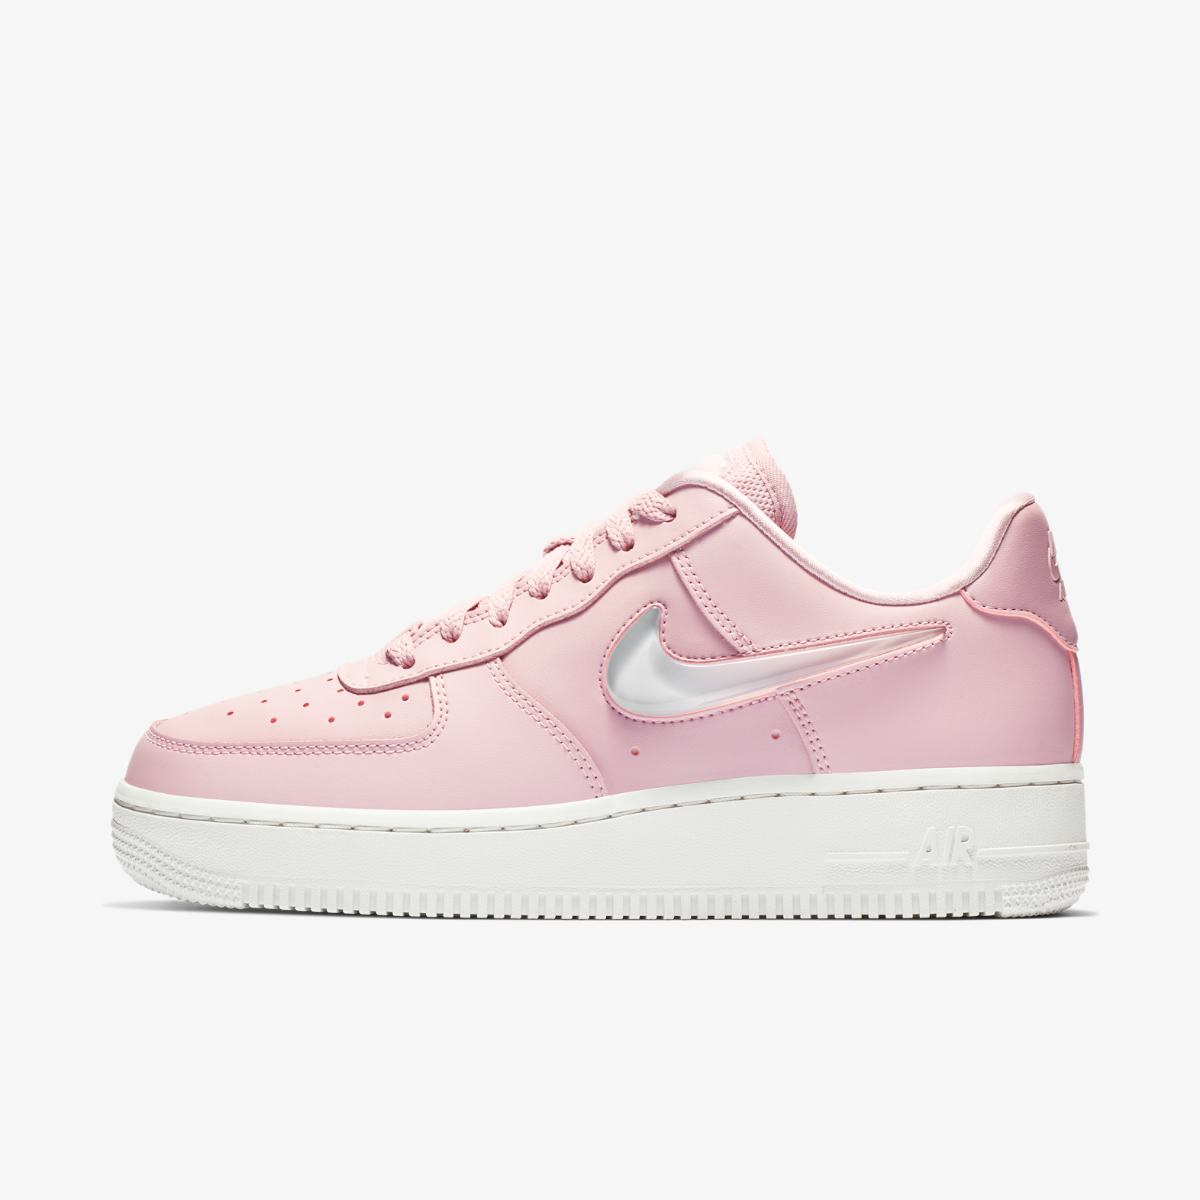 Кроссовки Nike W AIR FORCE 1 07 SE PRM